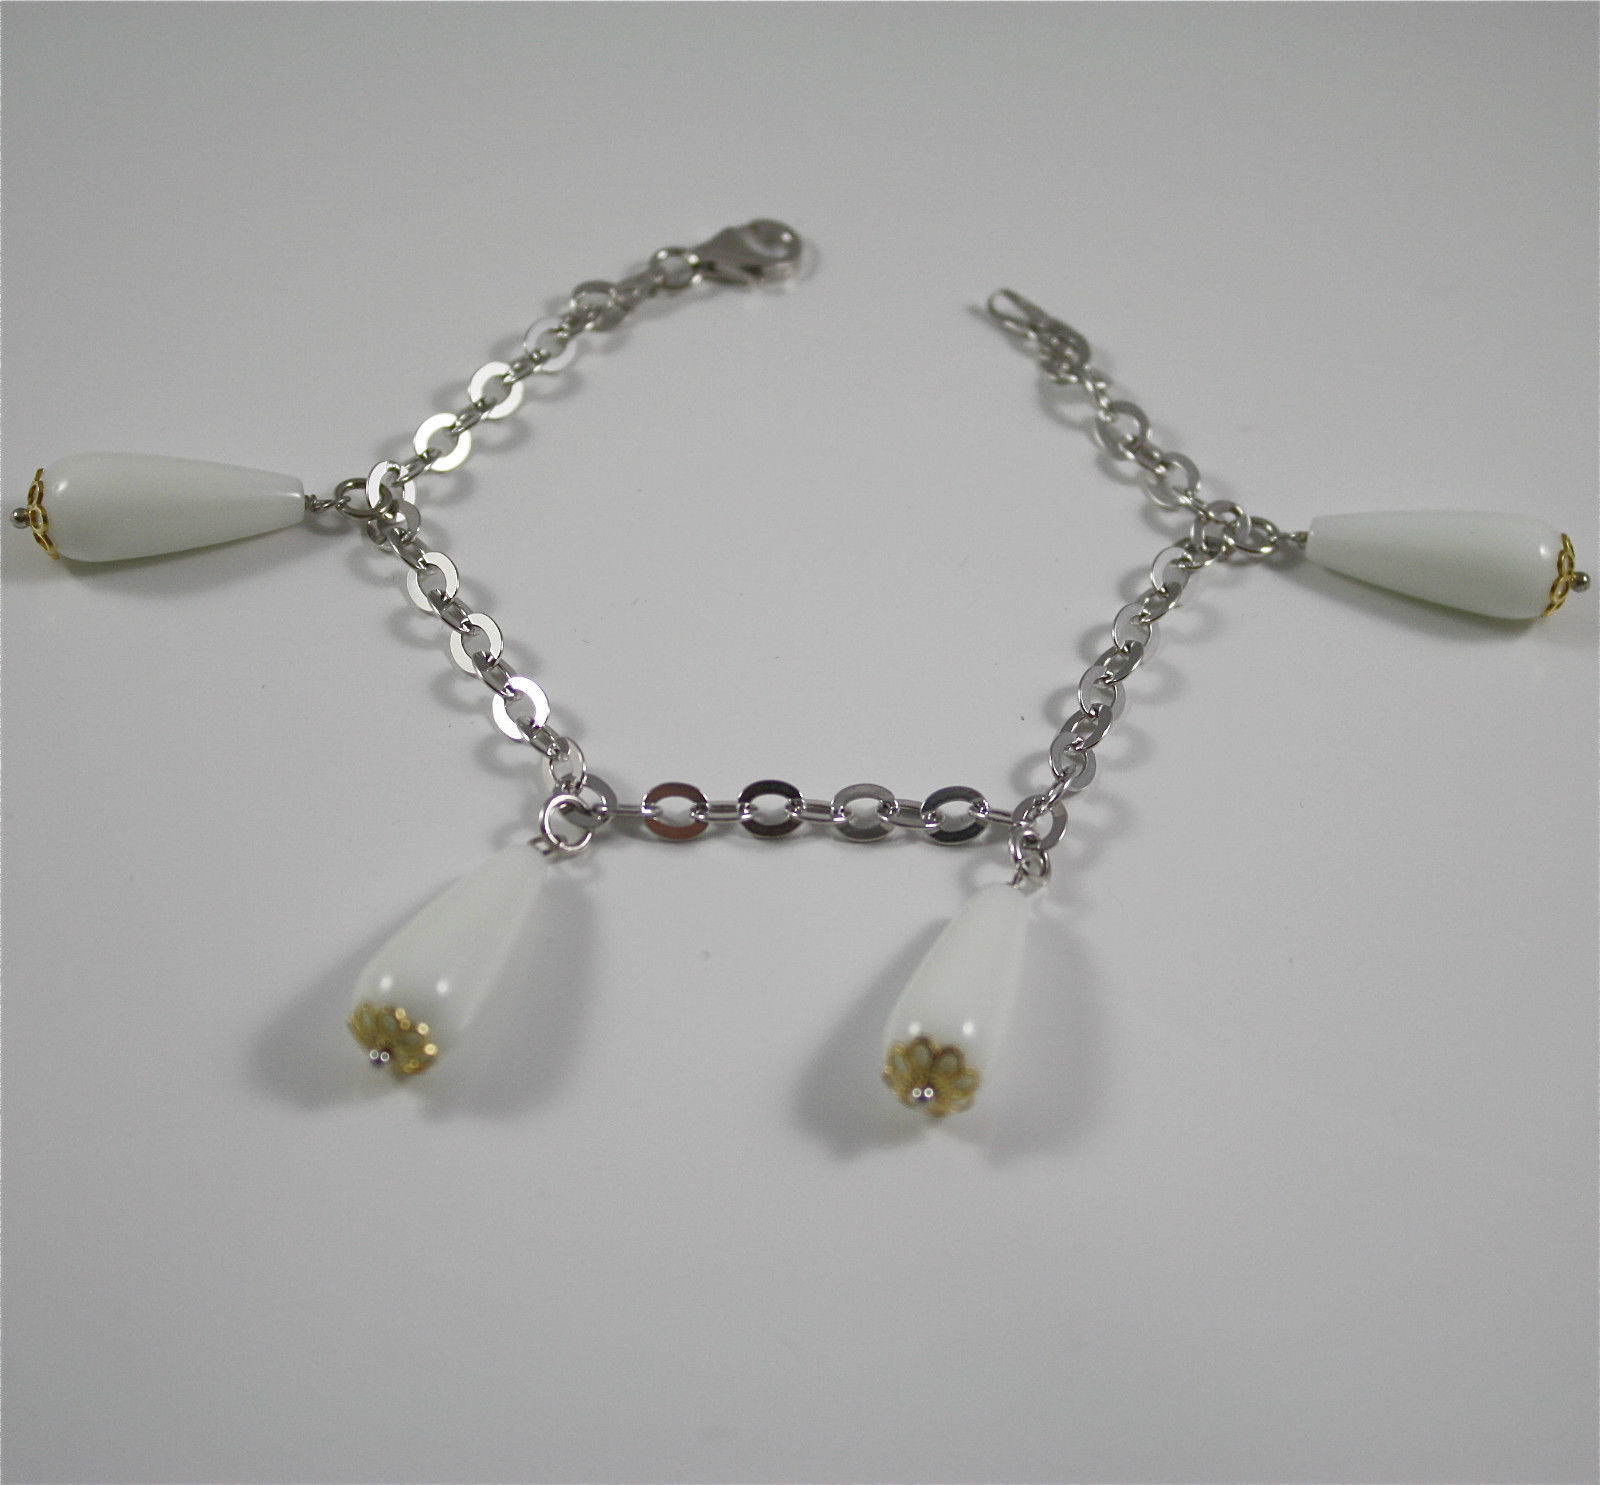 Bracelet in Sterling Silver 925 Rhodium and Yellow Gold Plated, White Agate Drop